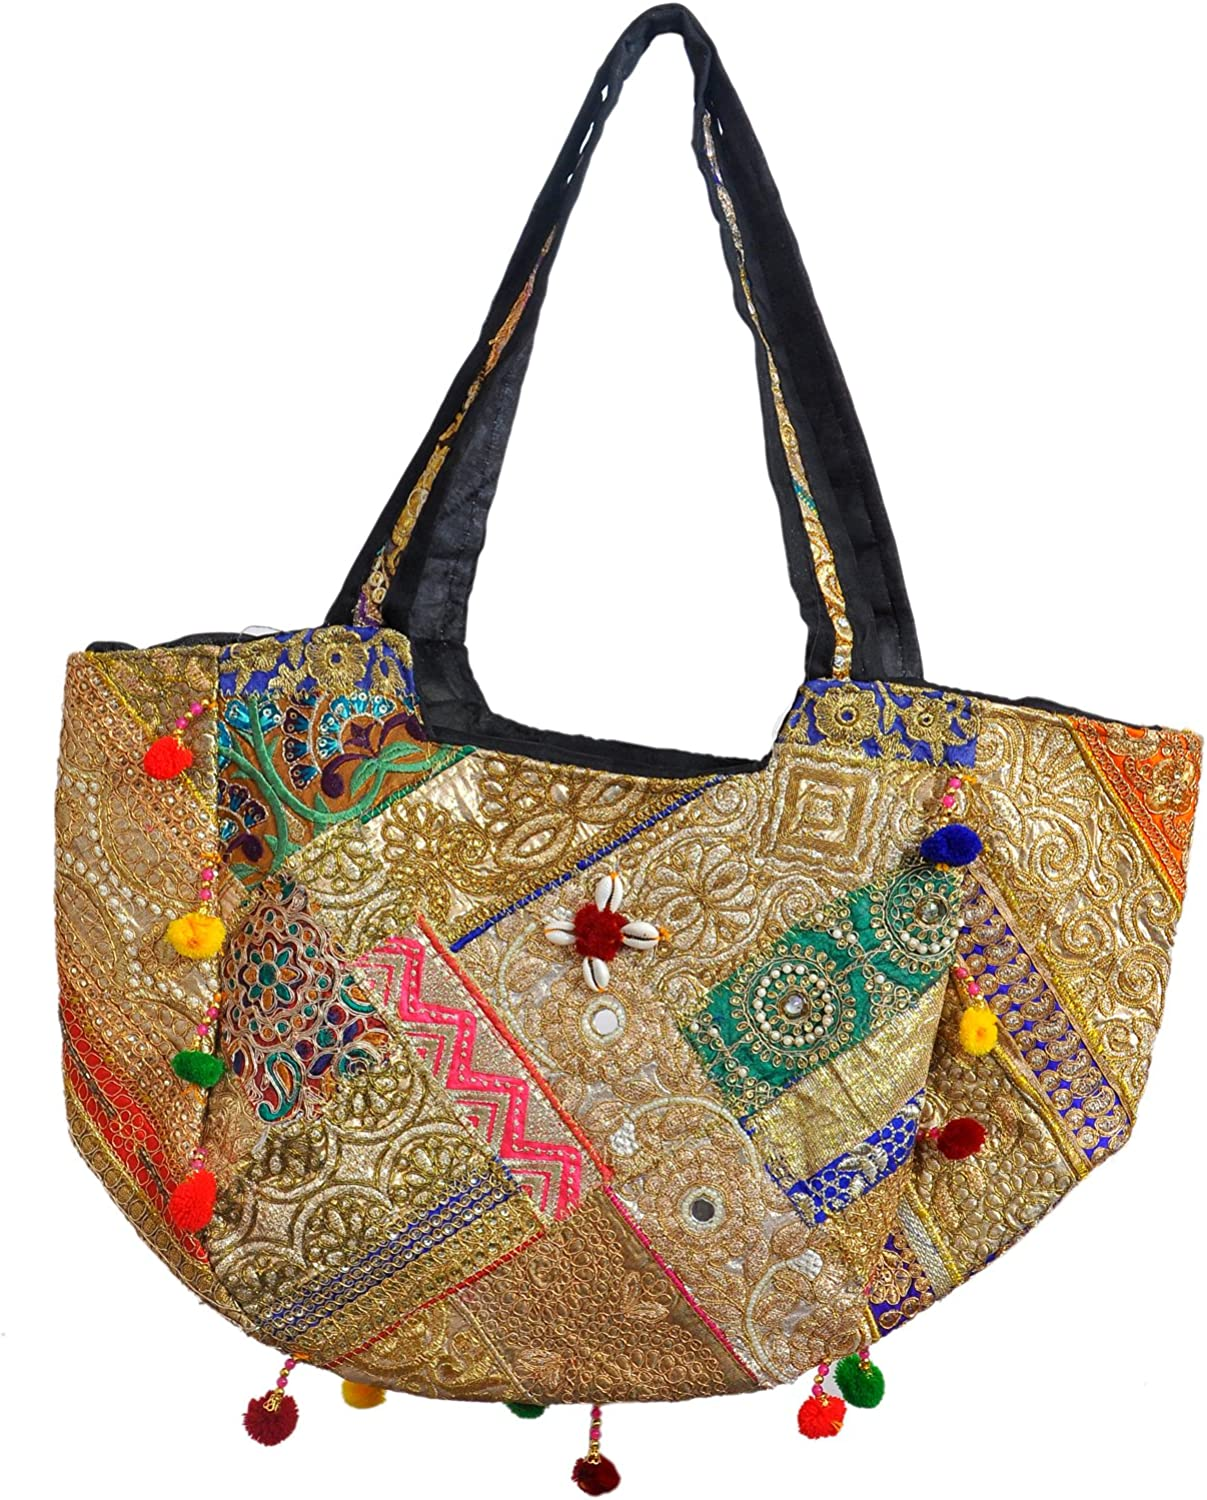 Gujarati embroidered golden shoulder bag handcrafted by Indian artisans - Christmas Collection 2021